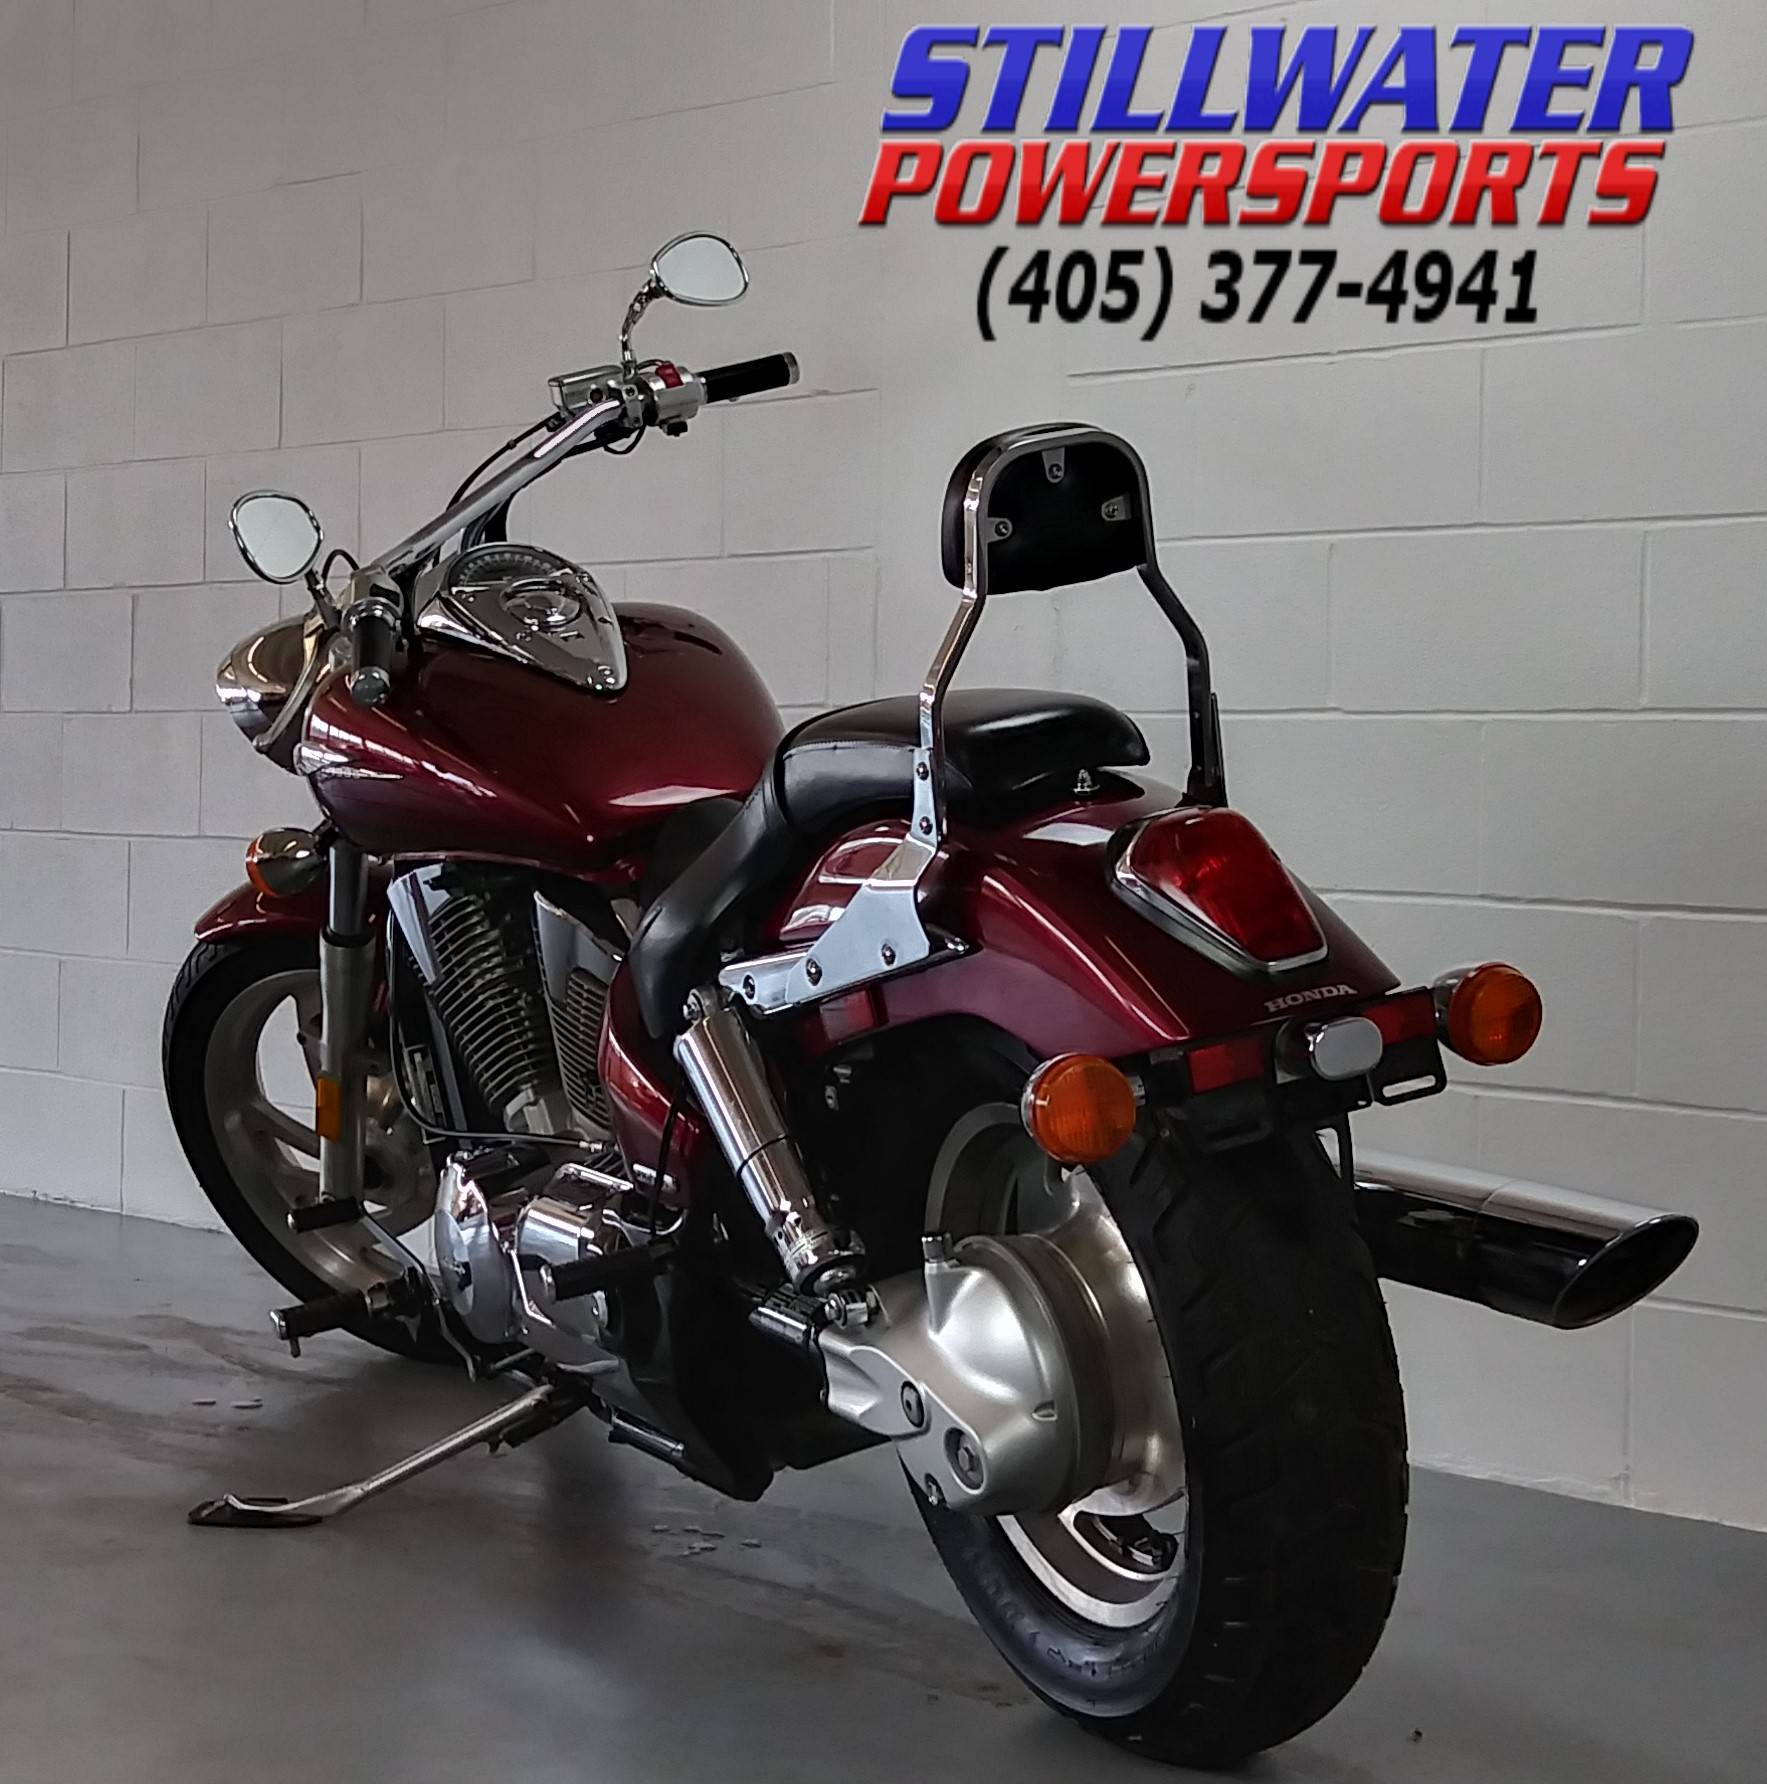 2006 Honda VTX™1300C in Stillwater, Oklahoma - Photo 3